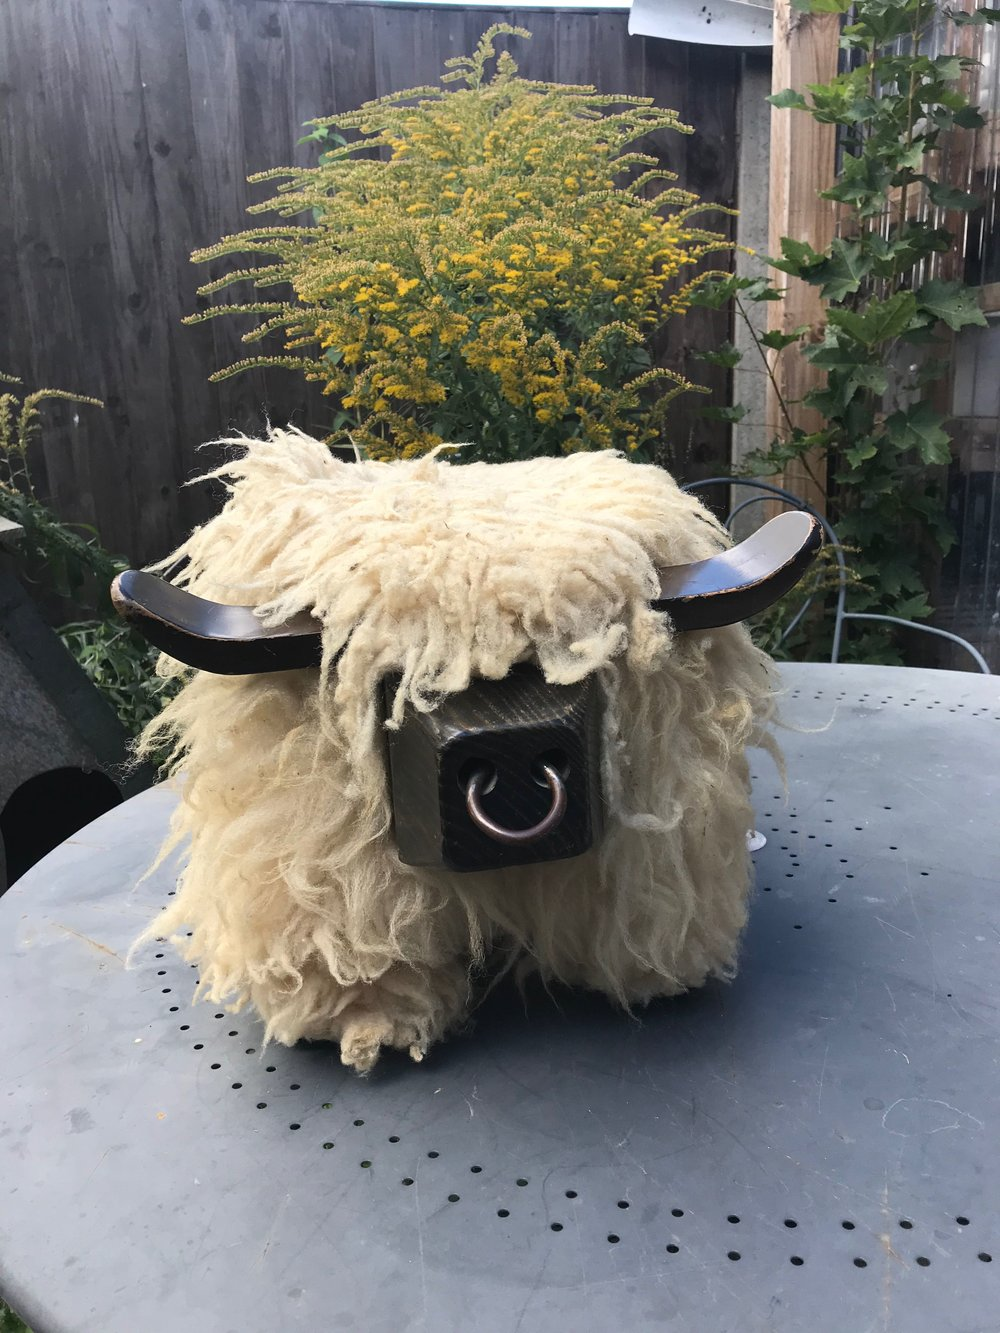 The Bull named Sheep arrives for surgery